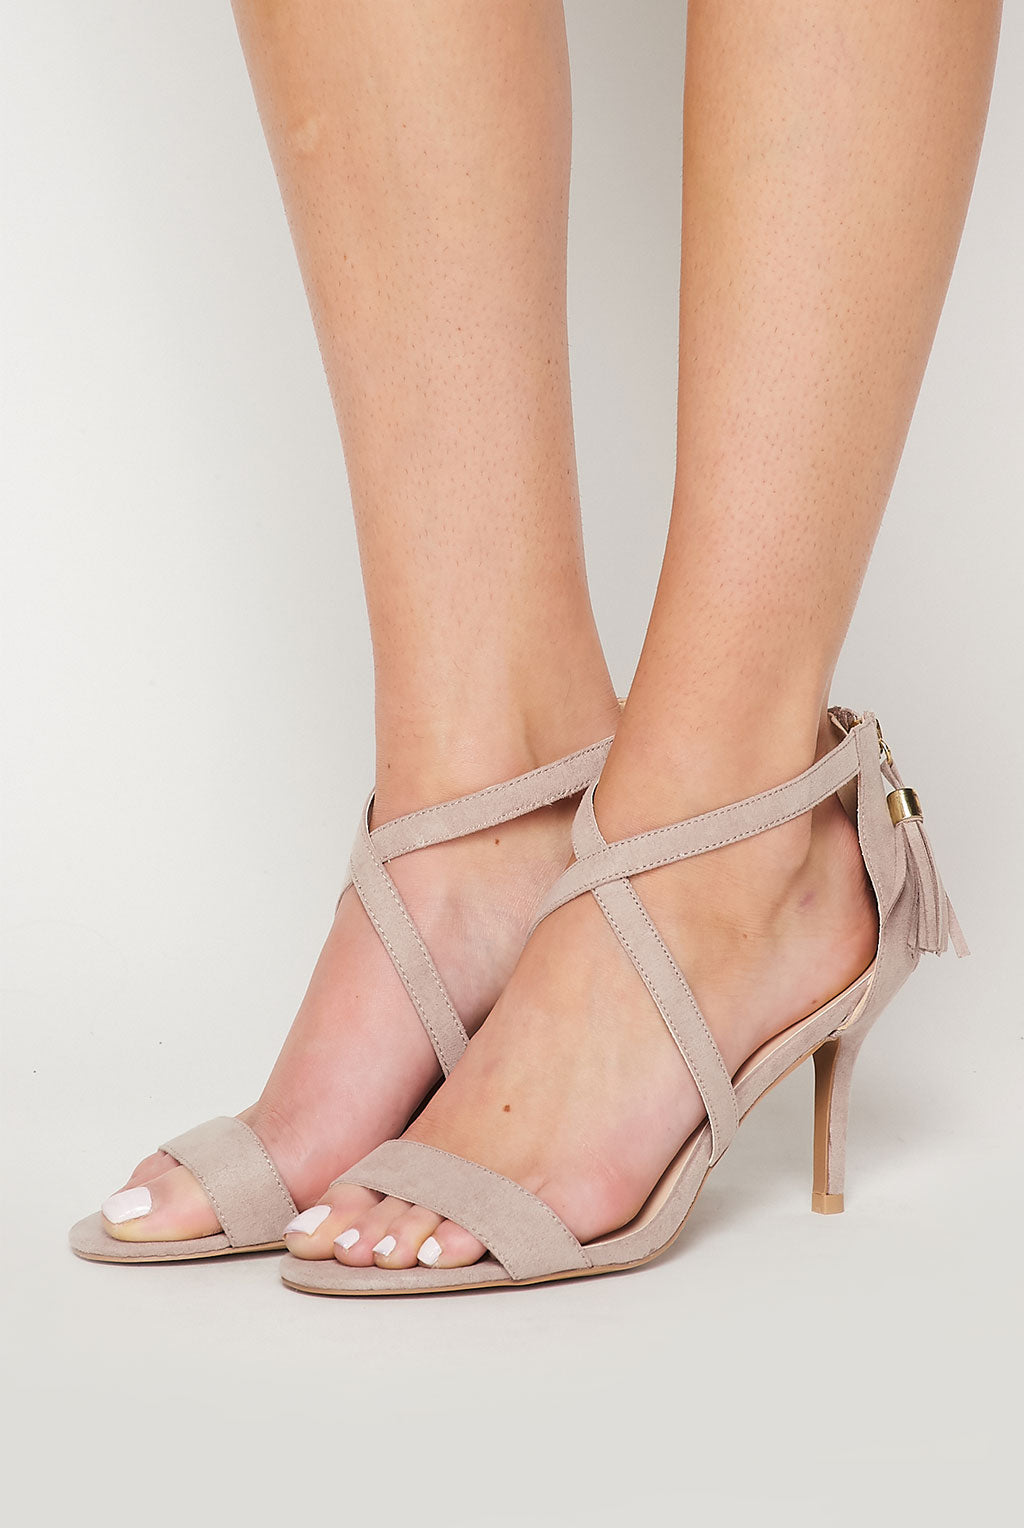 Teeze Me | Strappy Cross Band Tassel Heel | Nude